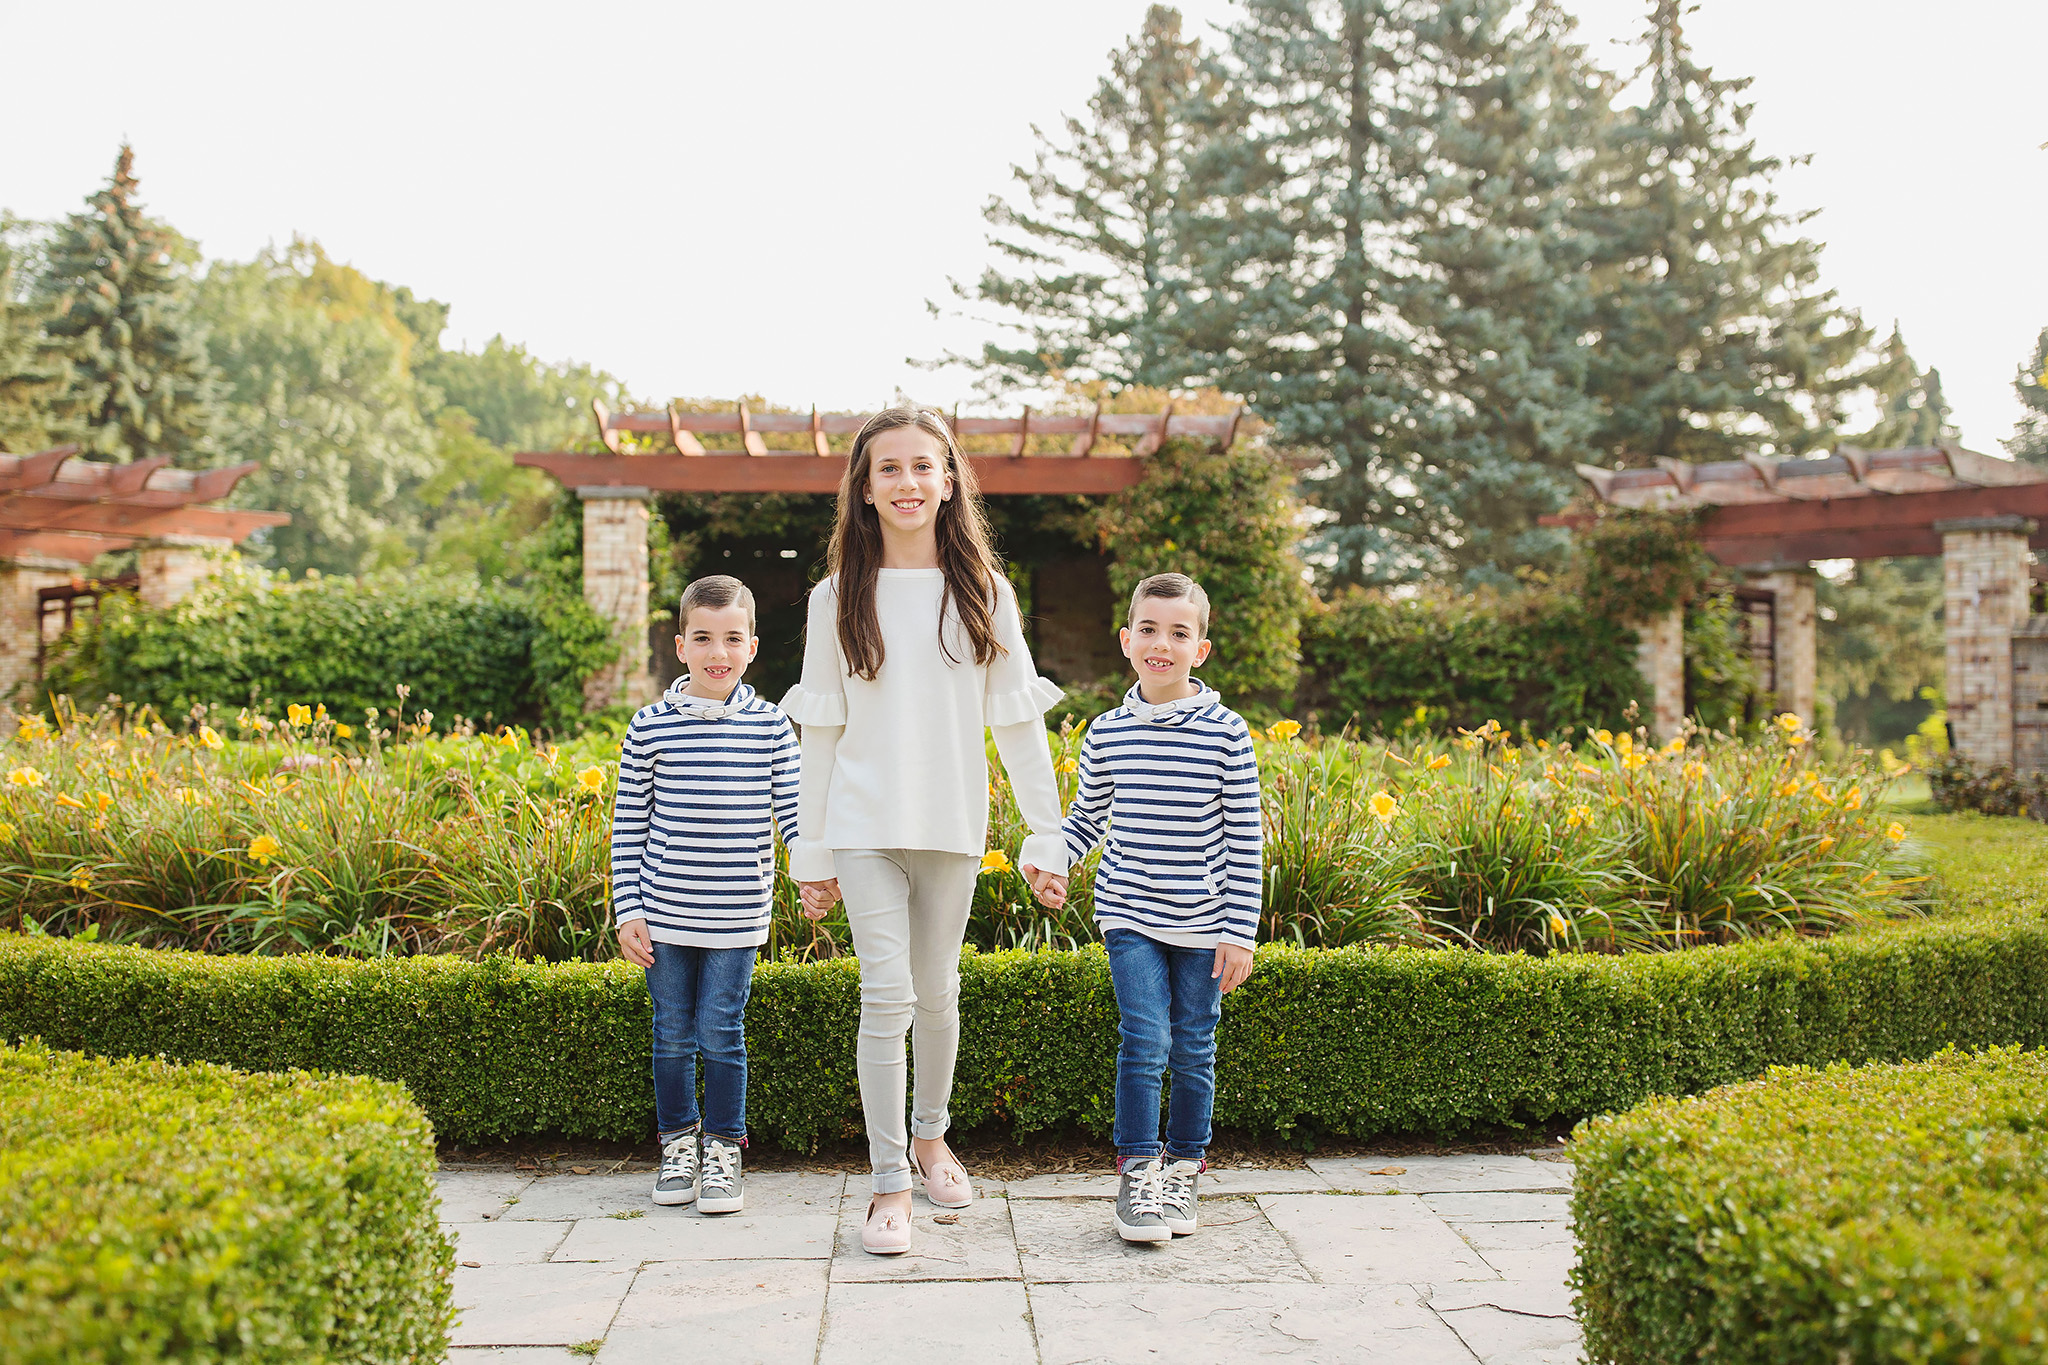 london_ontario_family_photographer-civic_gardens_extended_family_session-raw_footage_photography011.jpg